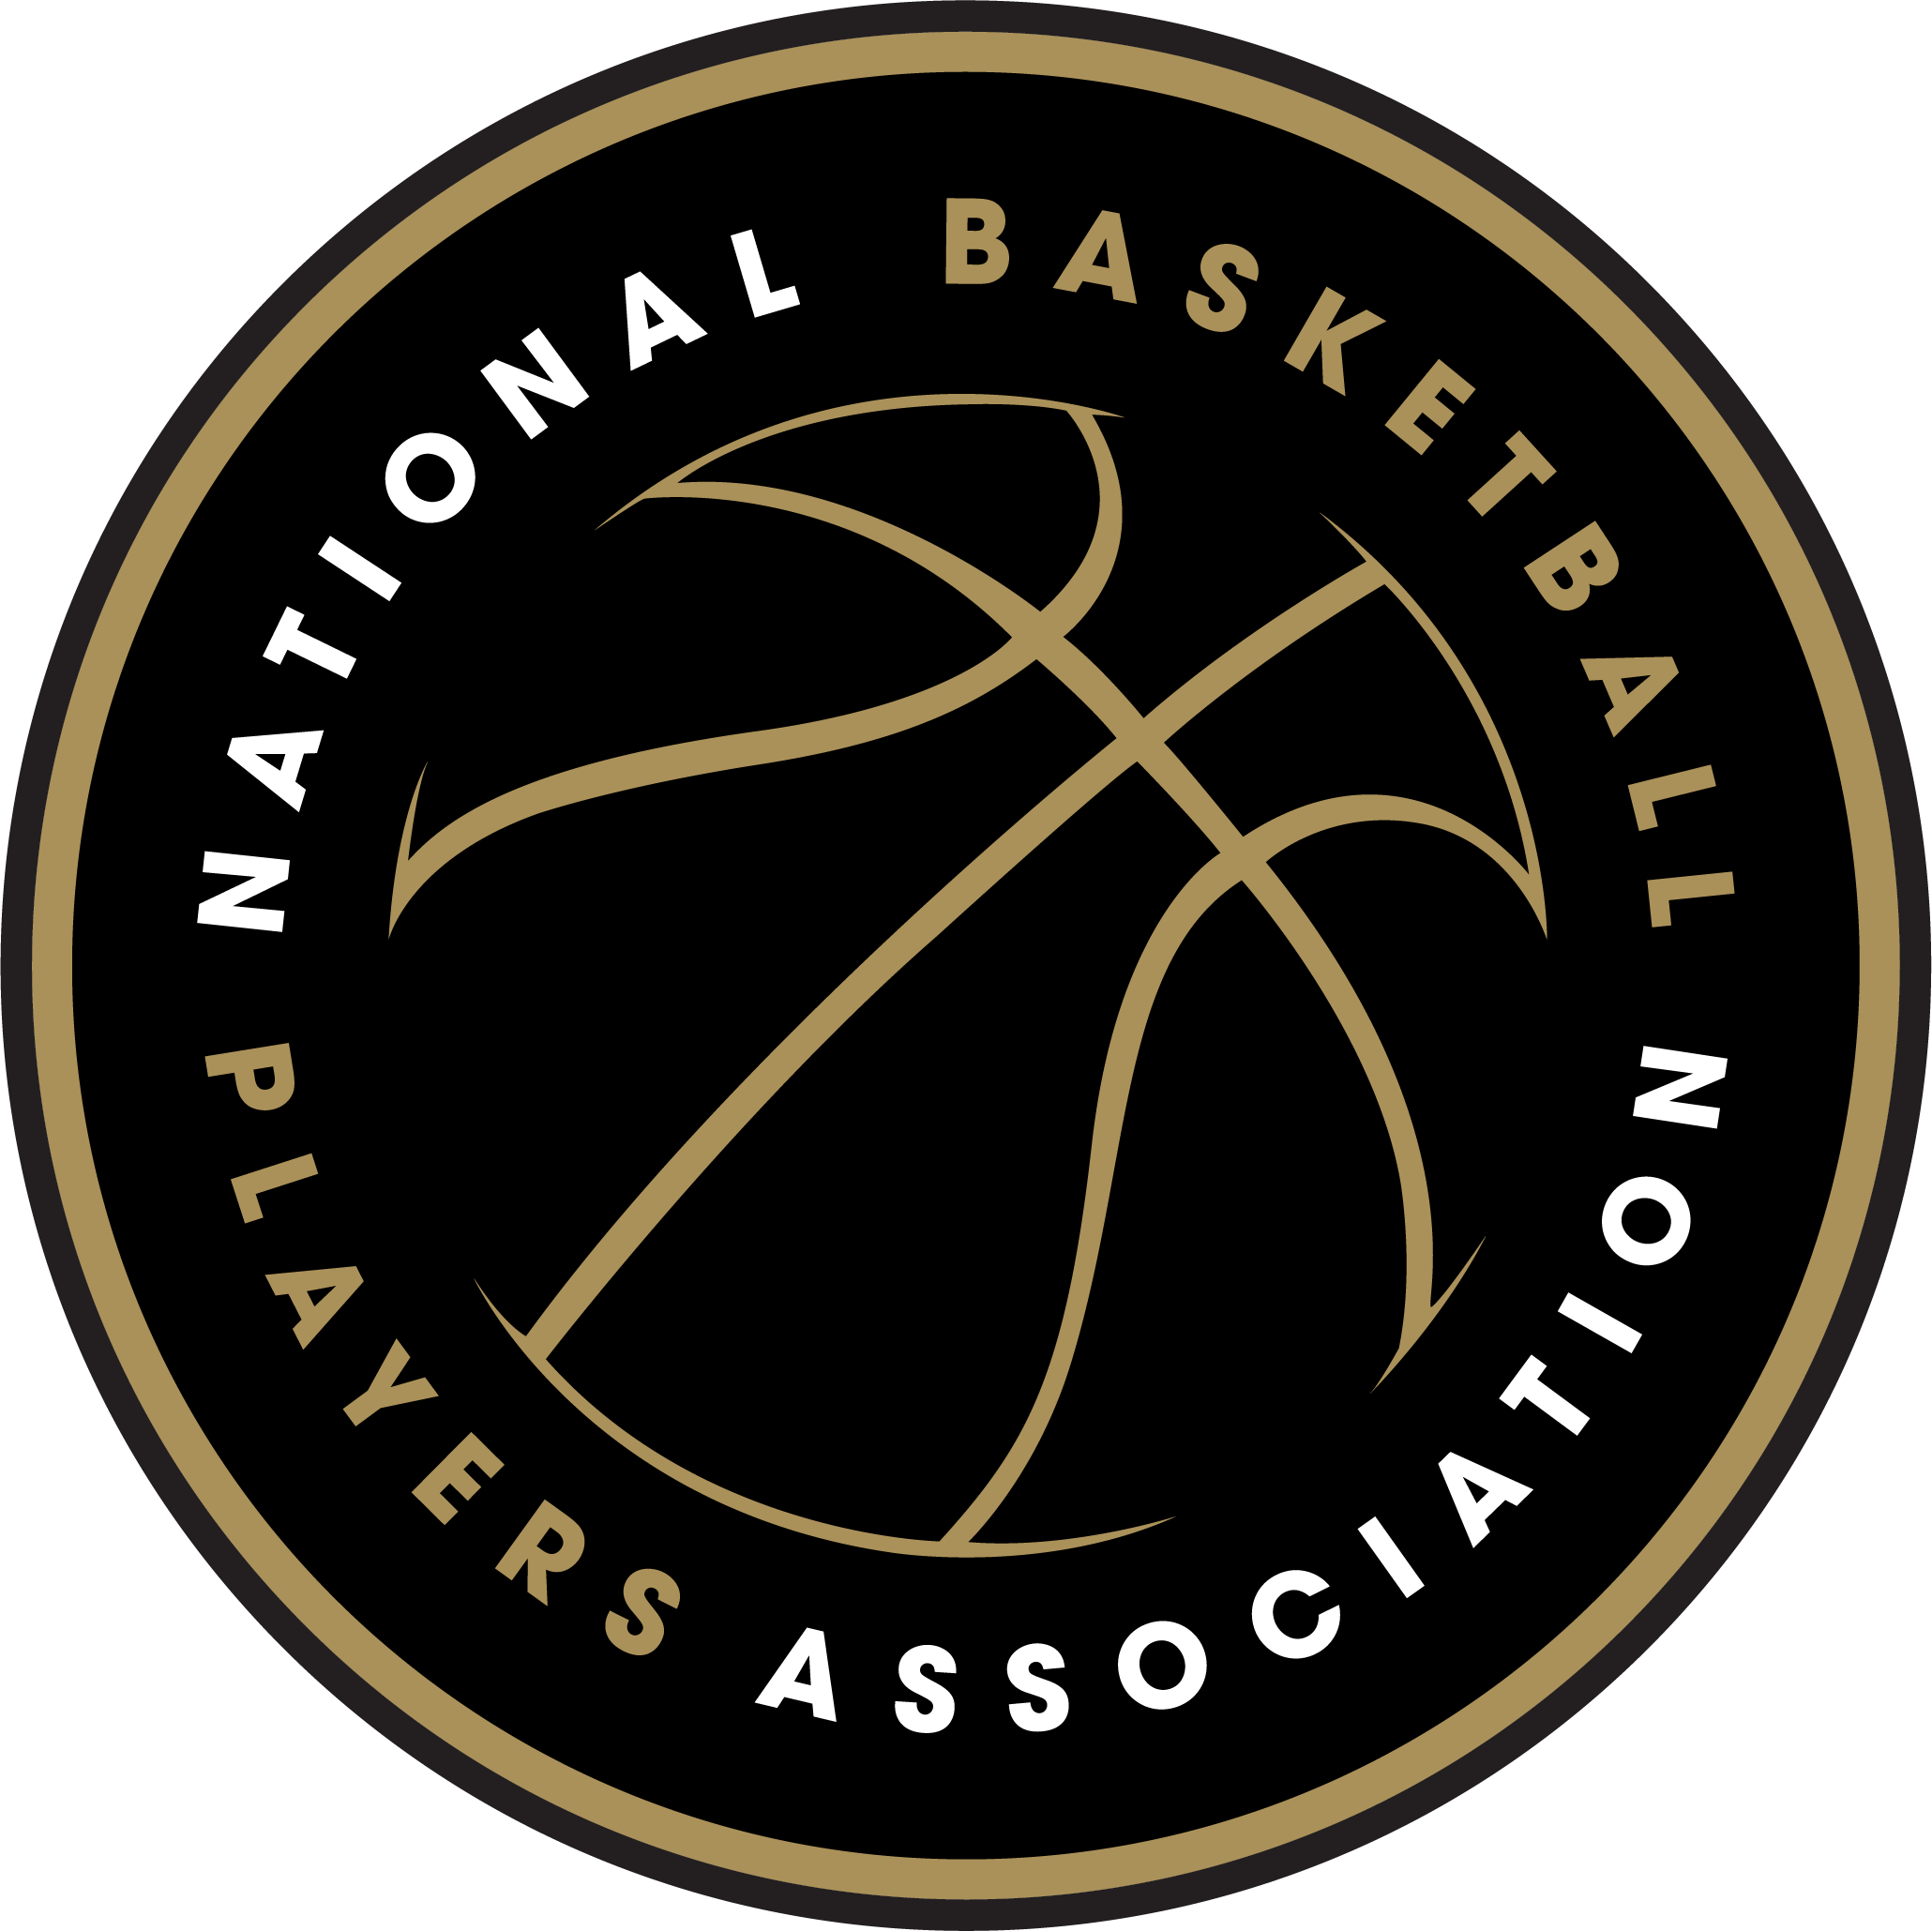 National Basketball Players Association logo used for Event Space in New York City